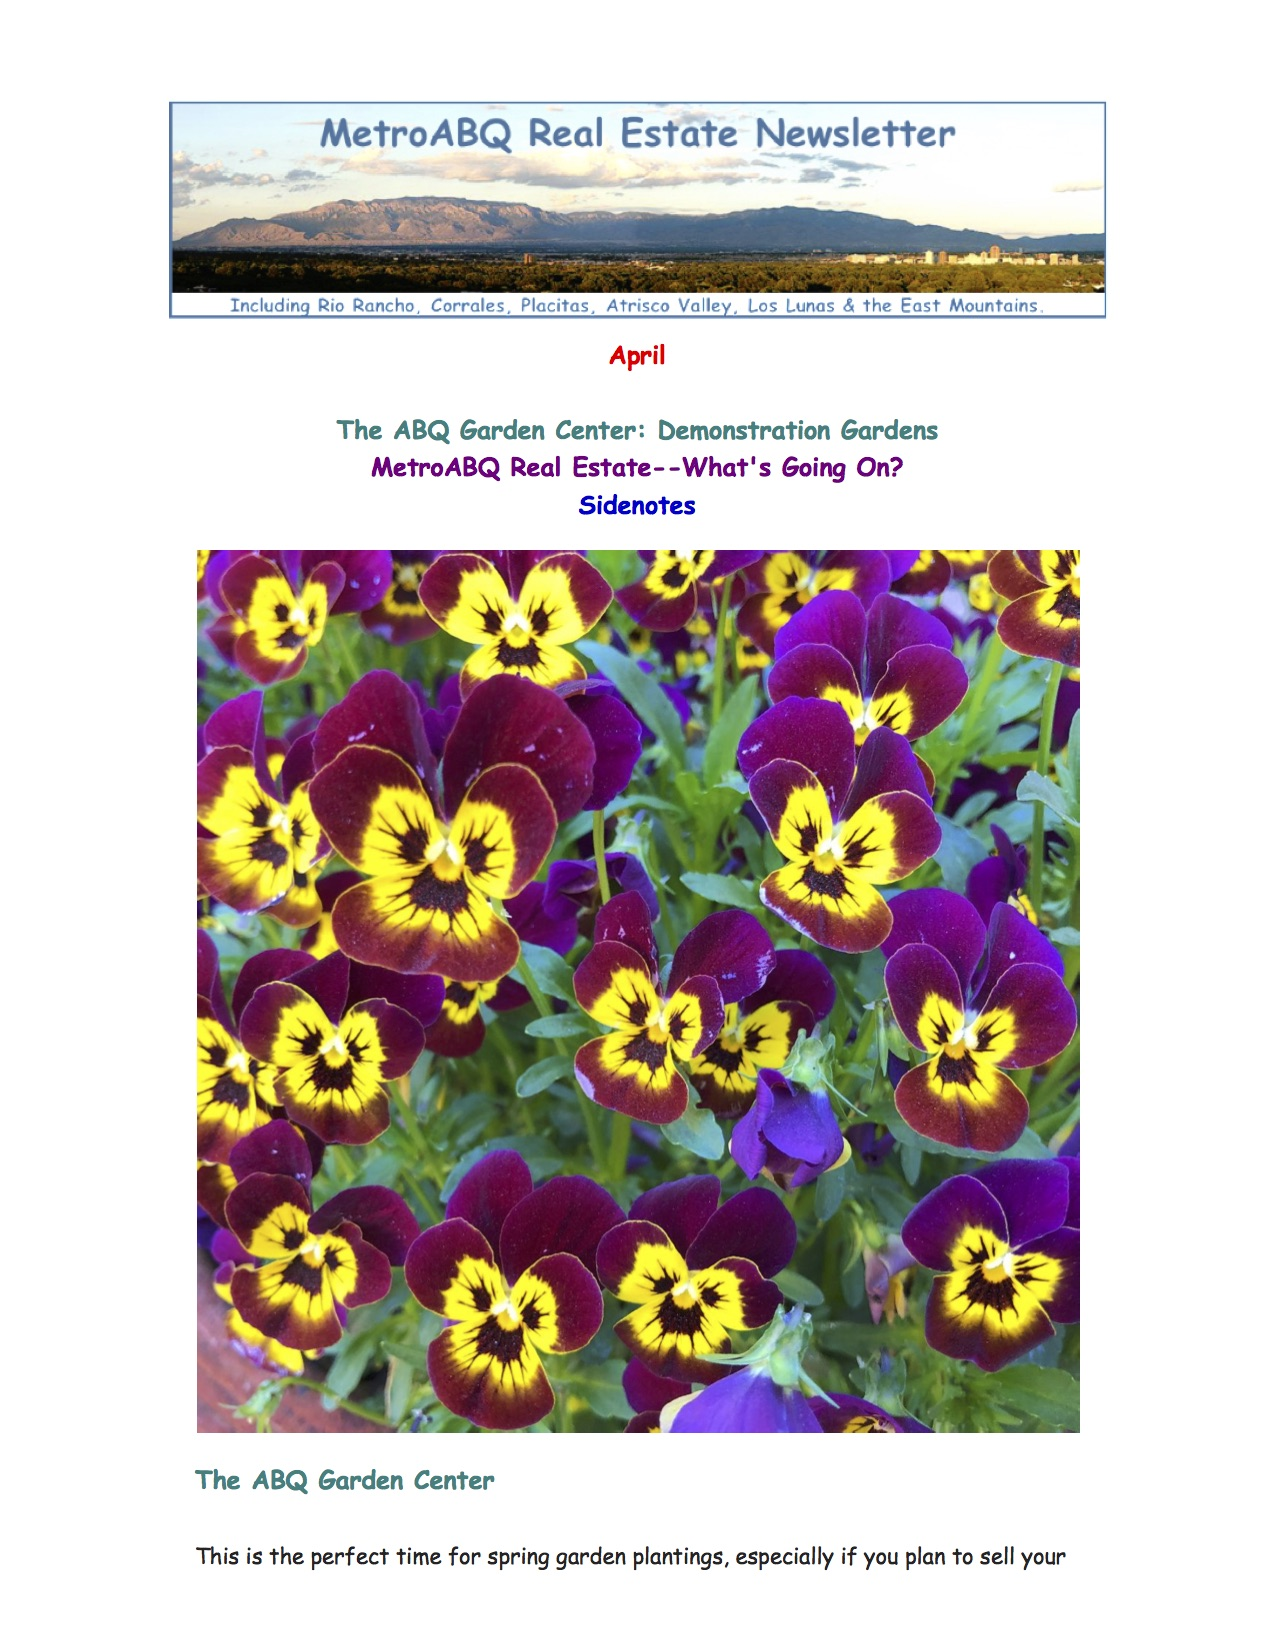 April -- ABQ Garden Center & What's Going On With ABQ Real Estate?